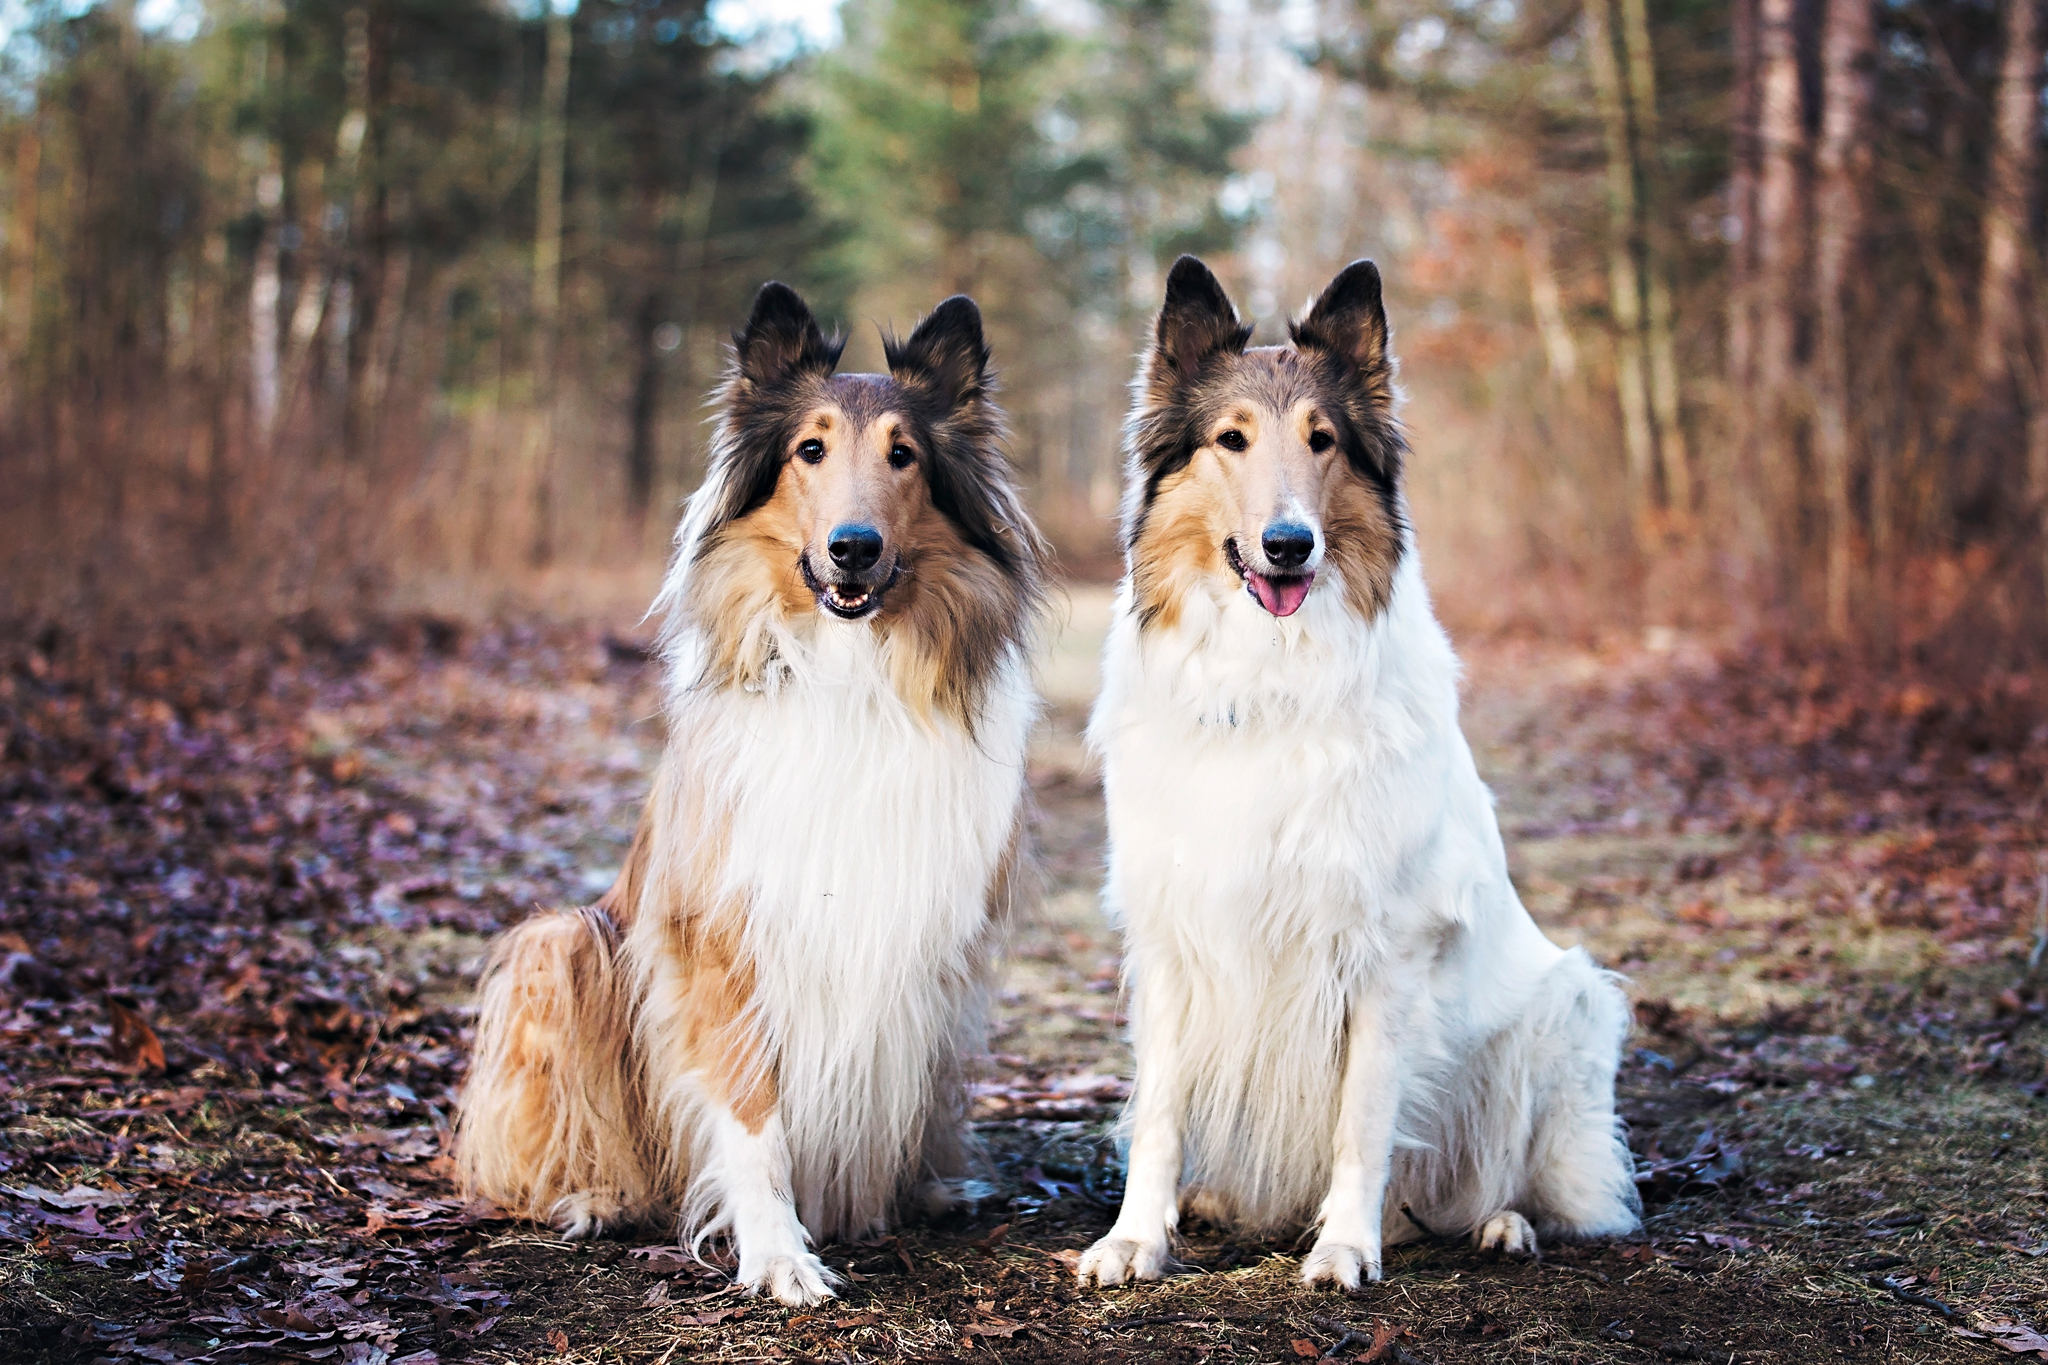 Our Collie Dogs at Crosswinds Marsh